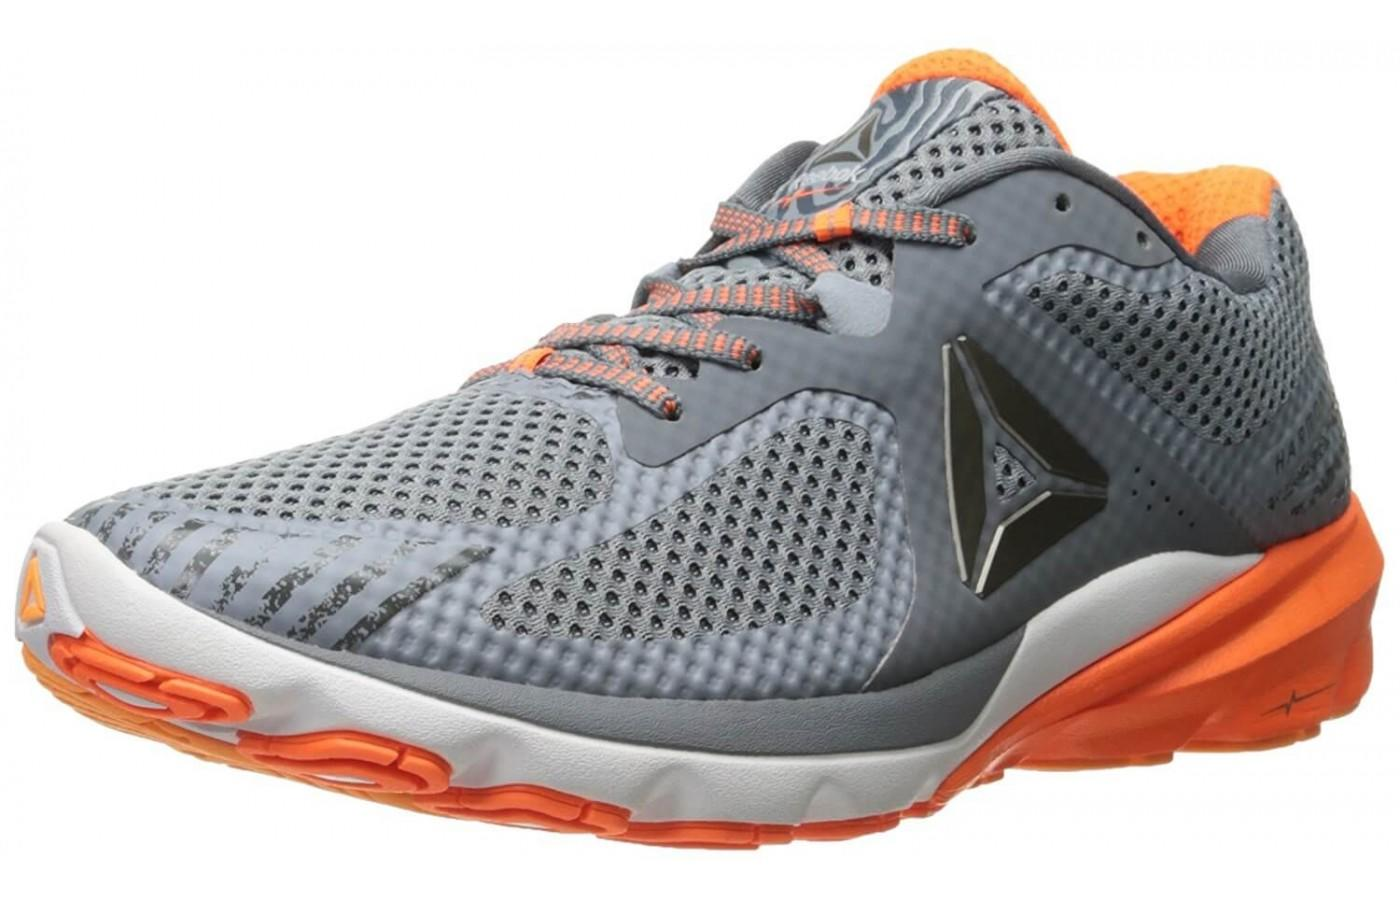 the Reebok Harmony Road is a dynamic high-performance trainer